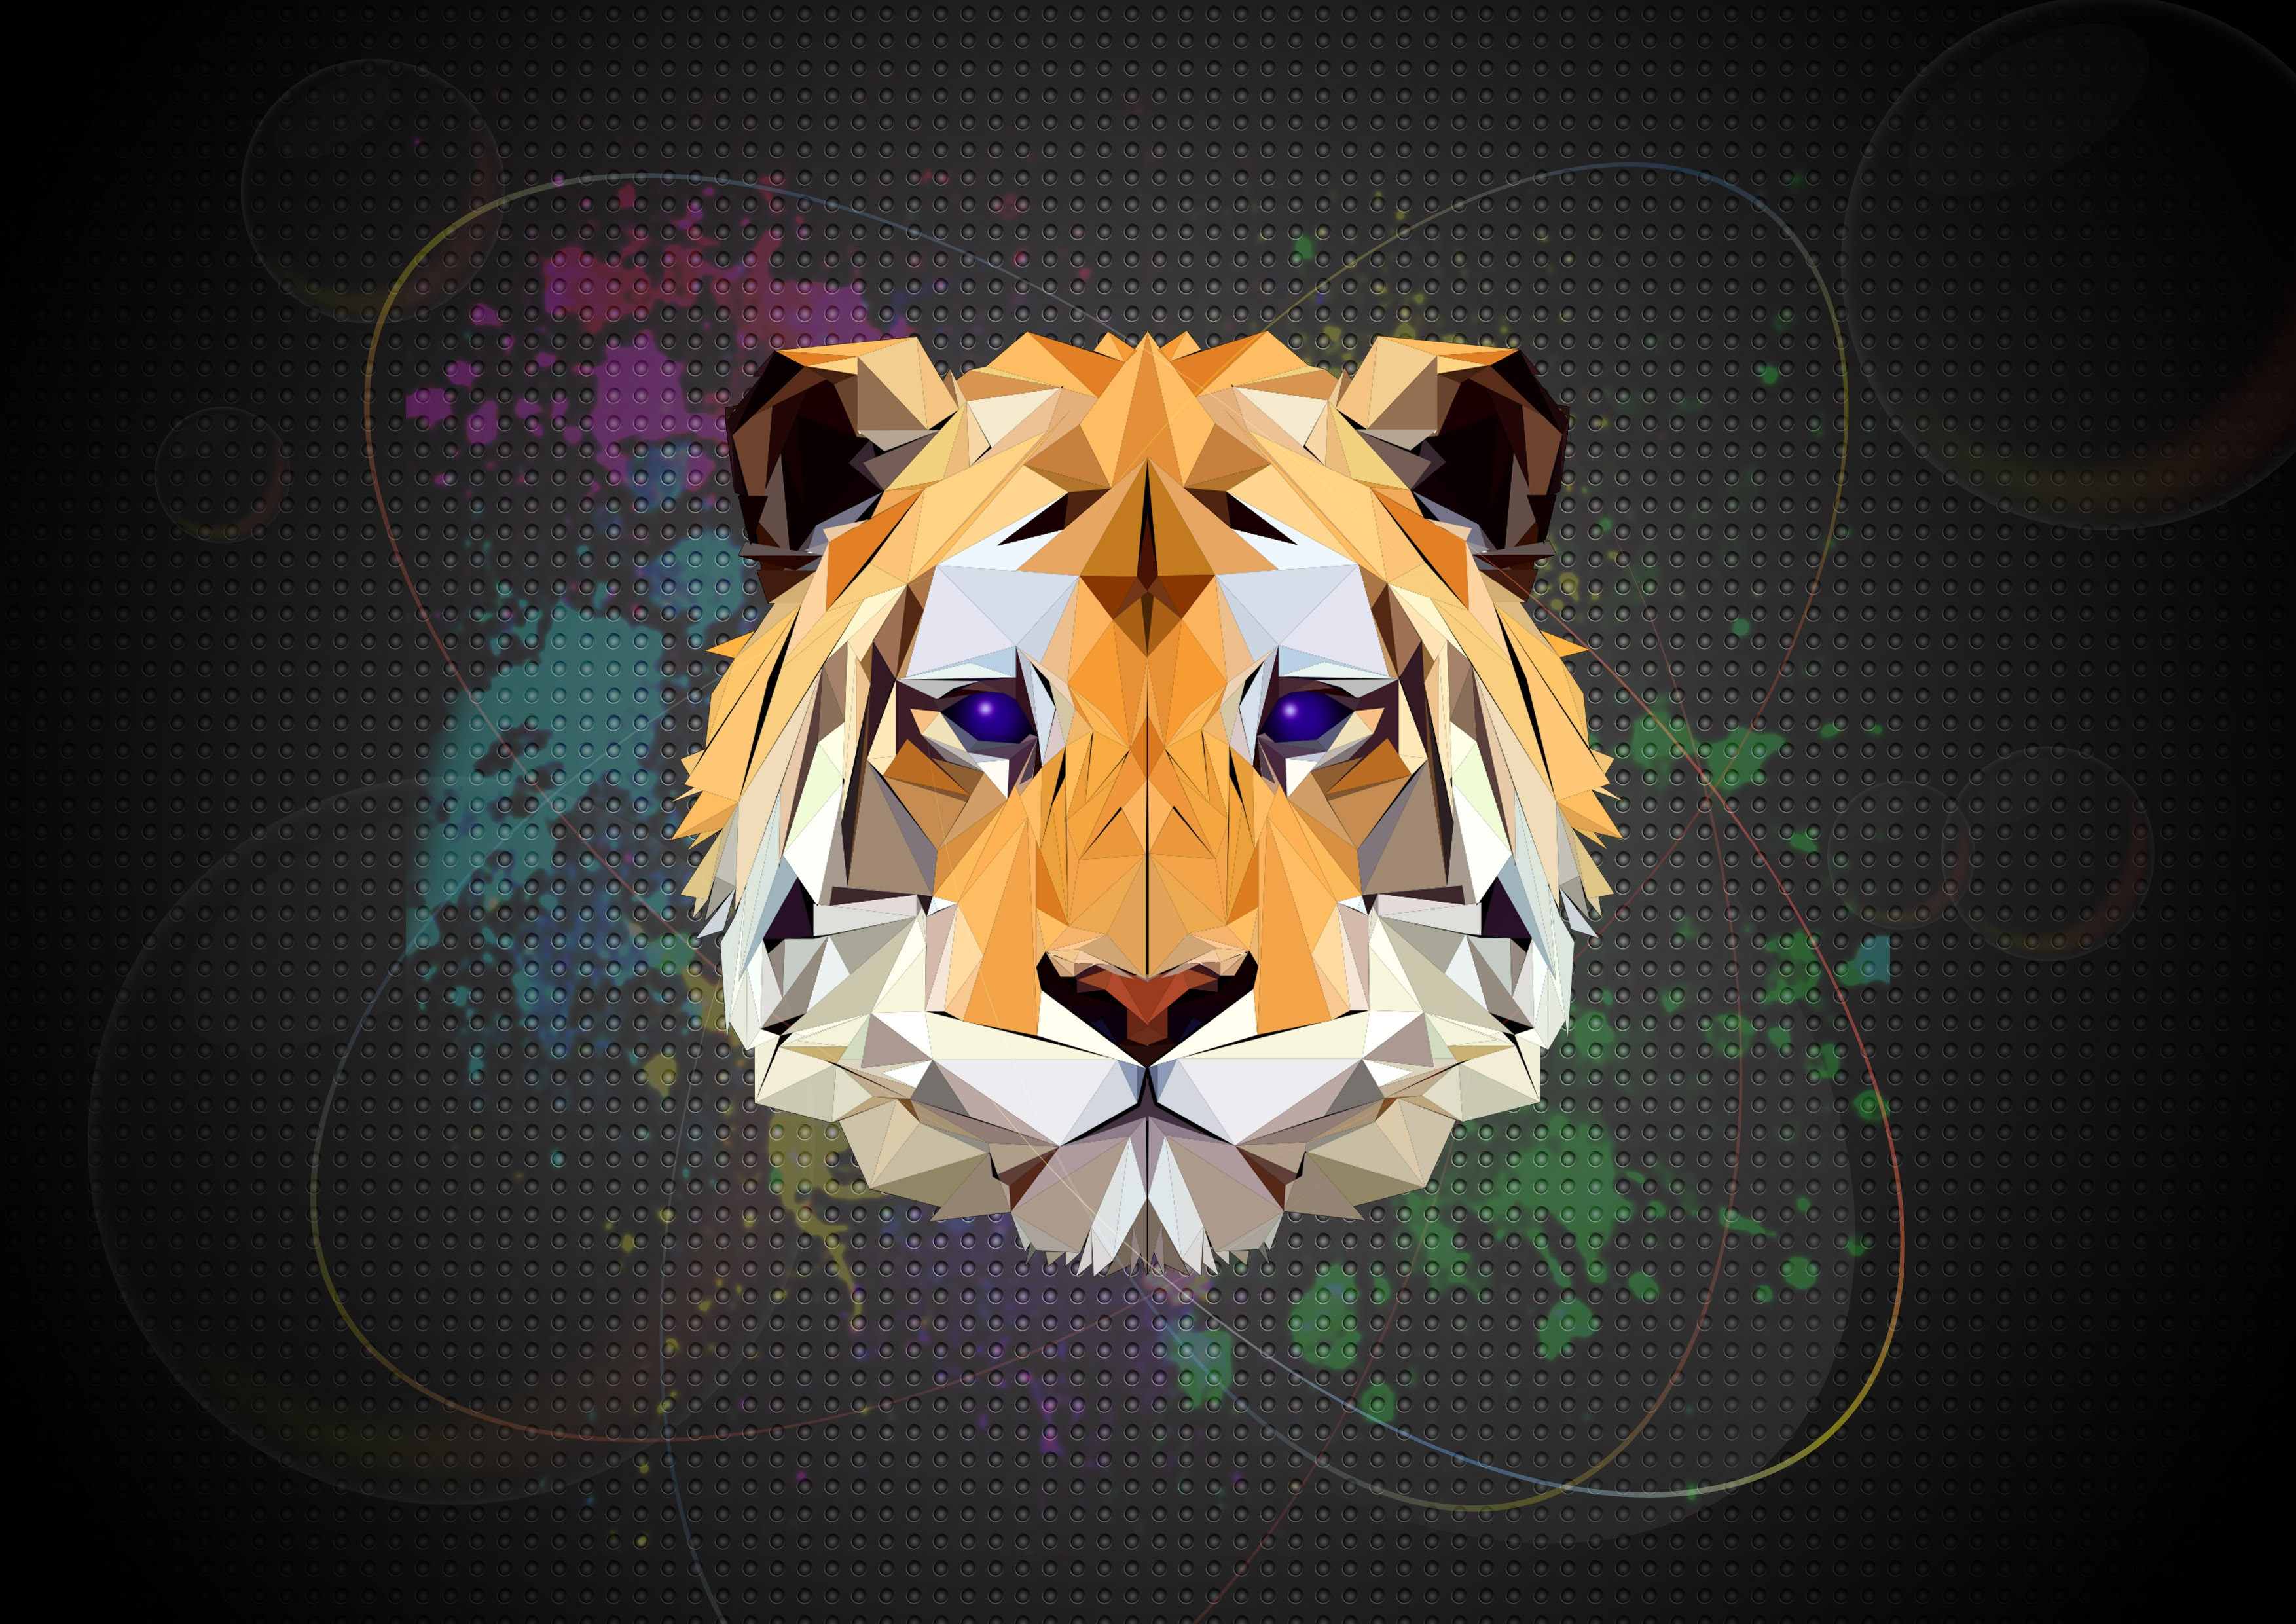 Tiger Facets HD Artist 4k Wallpapers Images Backgrounds Photos